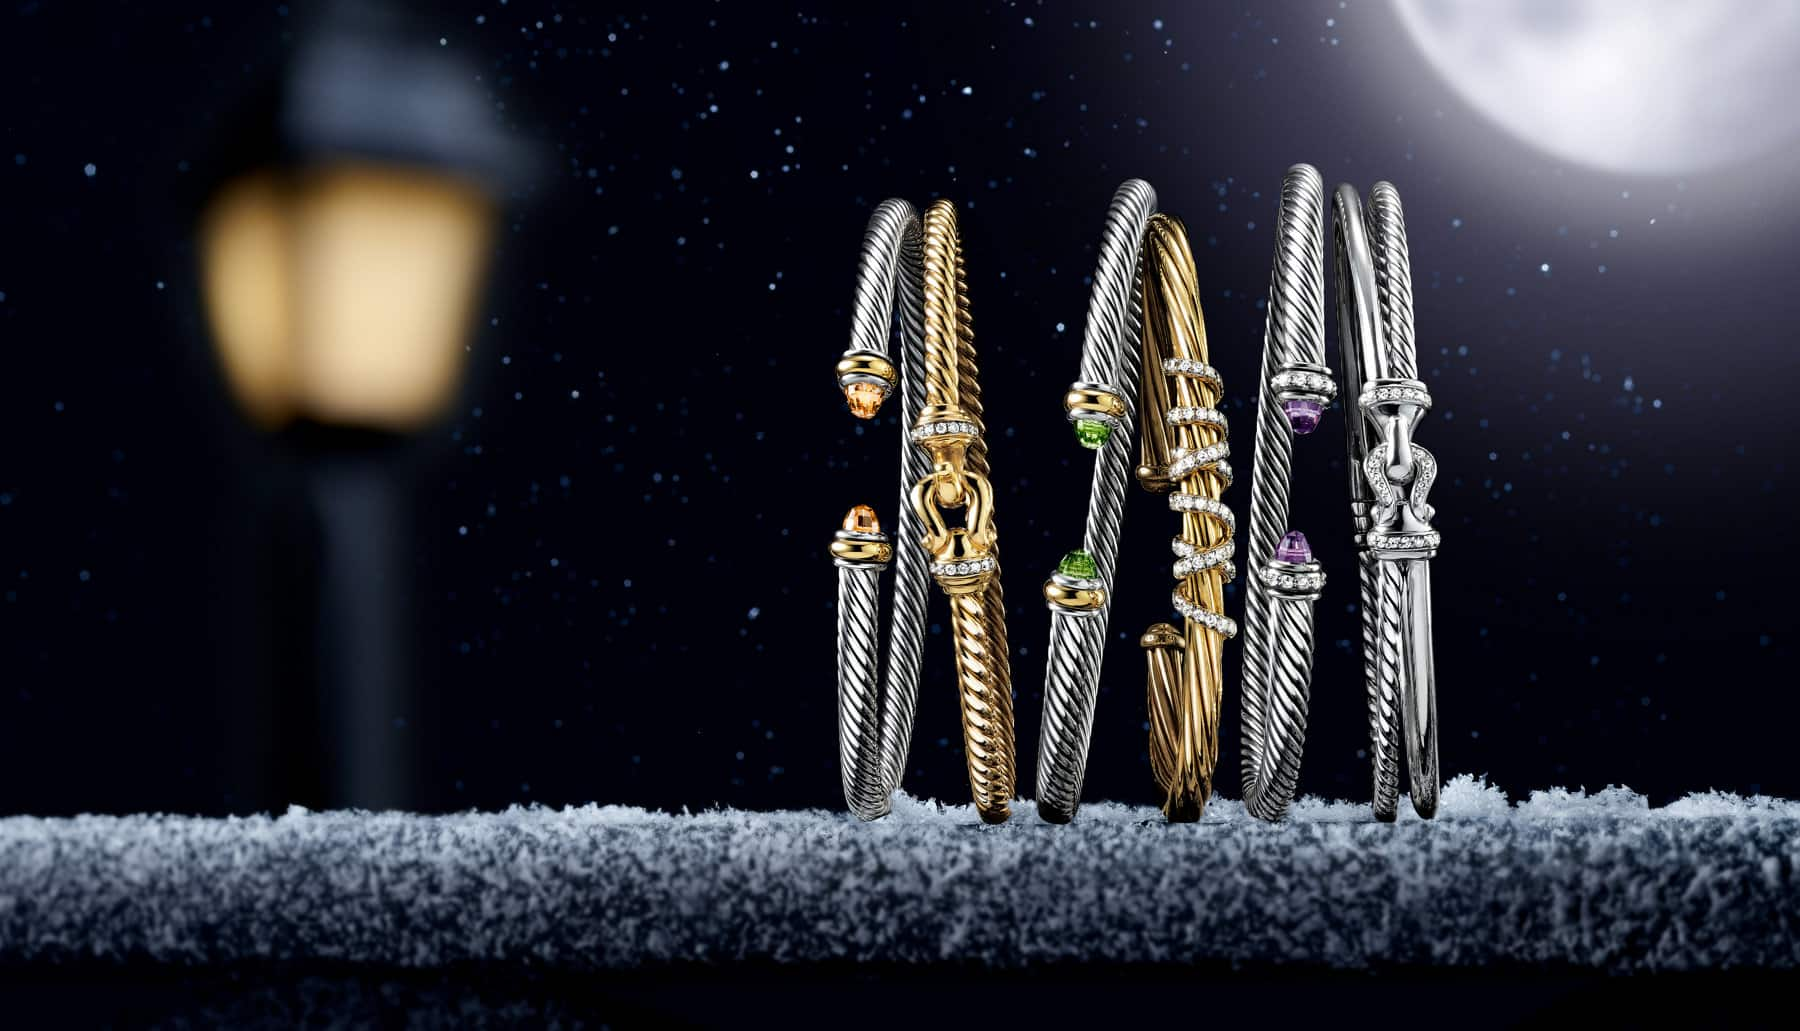 Six David Yurman bracelets from the Cable, Buckle and Helena collections are leaning against each other at night on a stone ledge lightly dusted with snowflakes. The women's jewelry is crafted from sterling silver with or without 18K yellow gold accents, white diamonds or colored gemstones, or 18K yellow gold with pavé white diamonds or amethyst. In the dark background is the golden glow of a nearby street light.